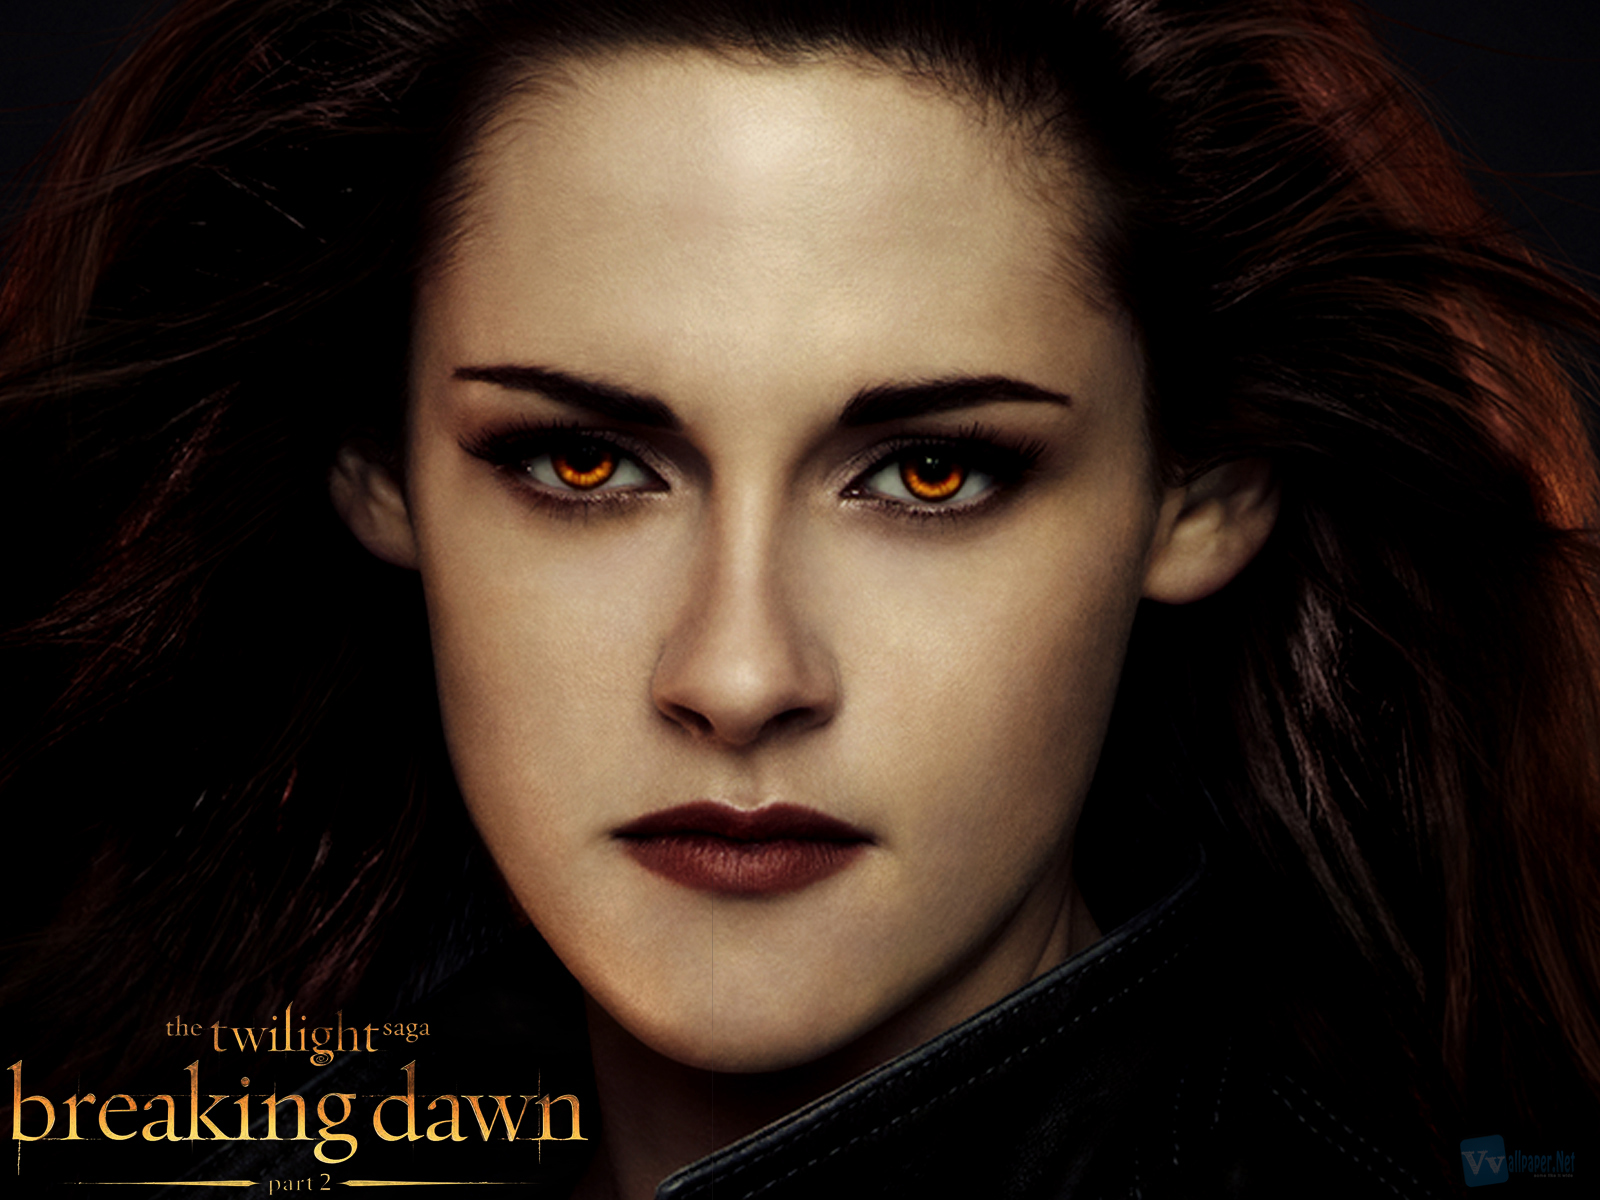 http://2.bp.blogspot.com/-DrWqw1vbJ9U/UFB-K4DAx7I/AAAAAAAAEho/OUD4M5sTPTE/s1600/Twilight-Saga-Breaking-Dawn-Part-2-Bella-HD-Wallpaper--Vvallpaper.Net.jpg